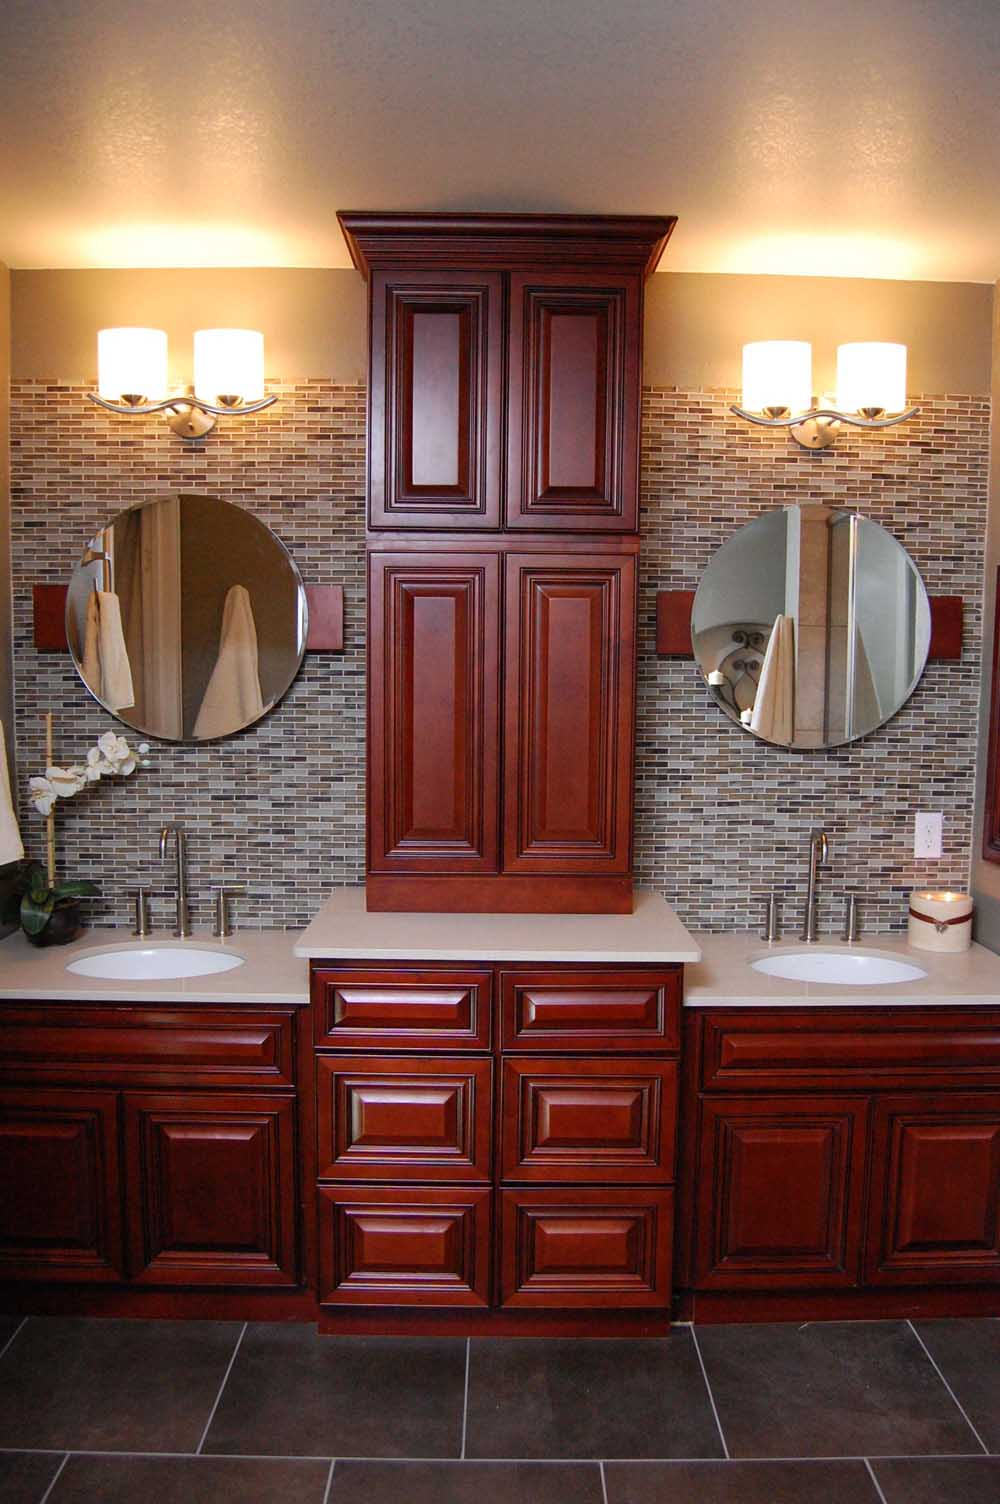 bathroom vanity cabinets with sink. cherryville bathroom vanity cabinets with sink